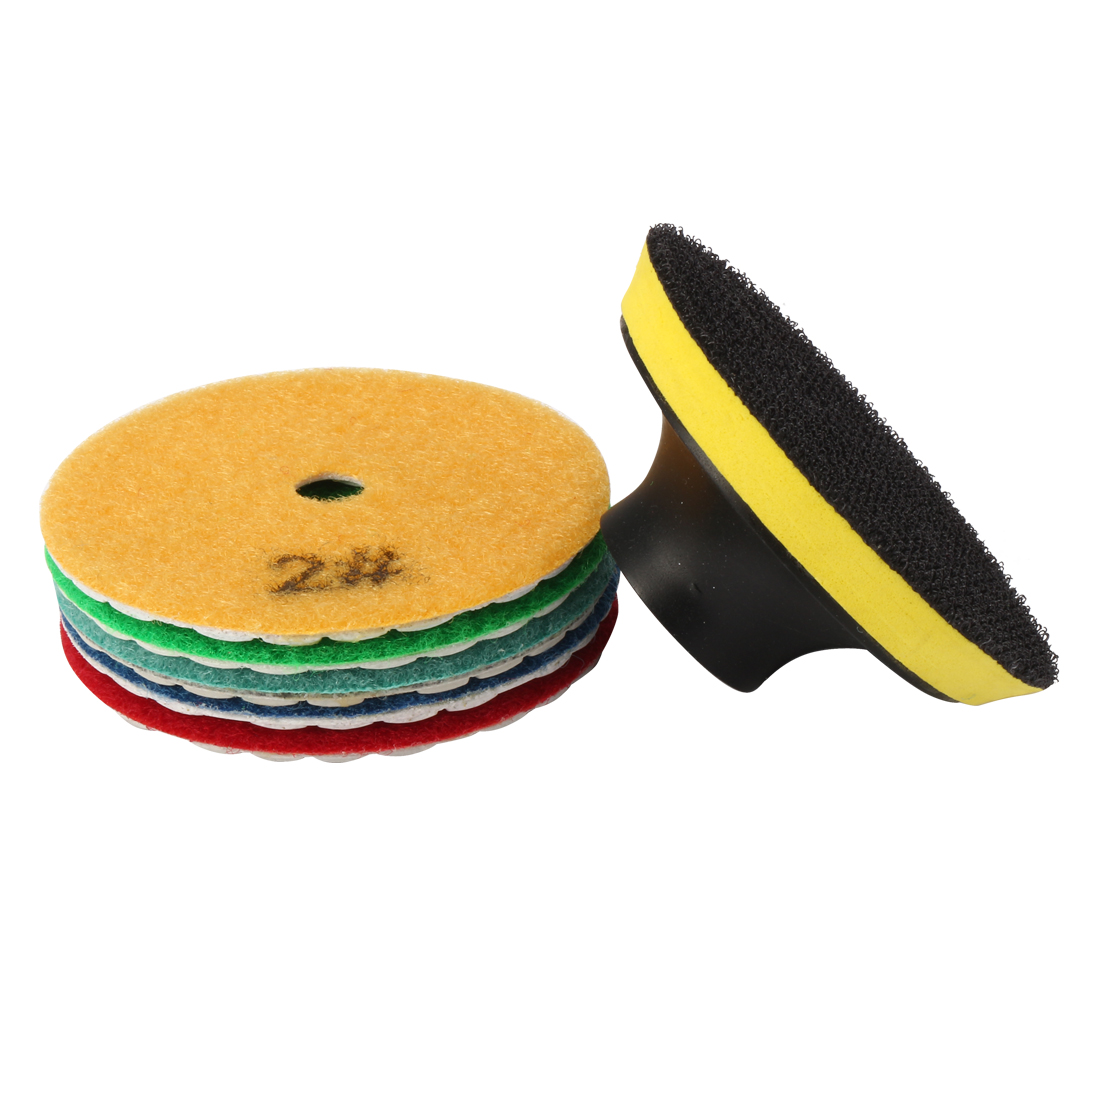 3-inch Diamond Dry Polishing Pad 5 in 1 for Sanding Marble Granite Stone